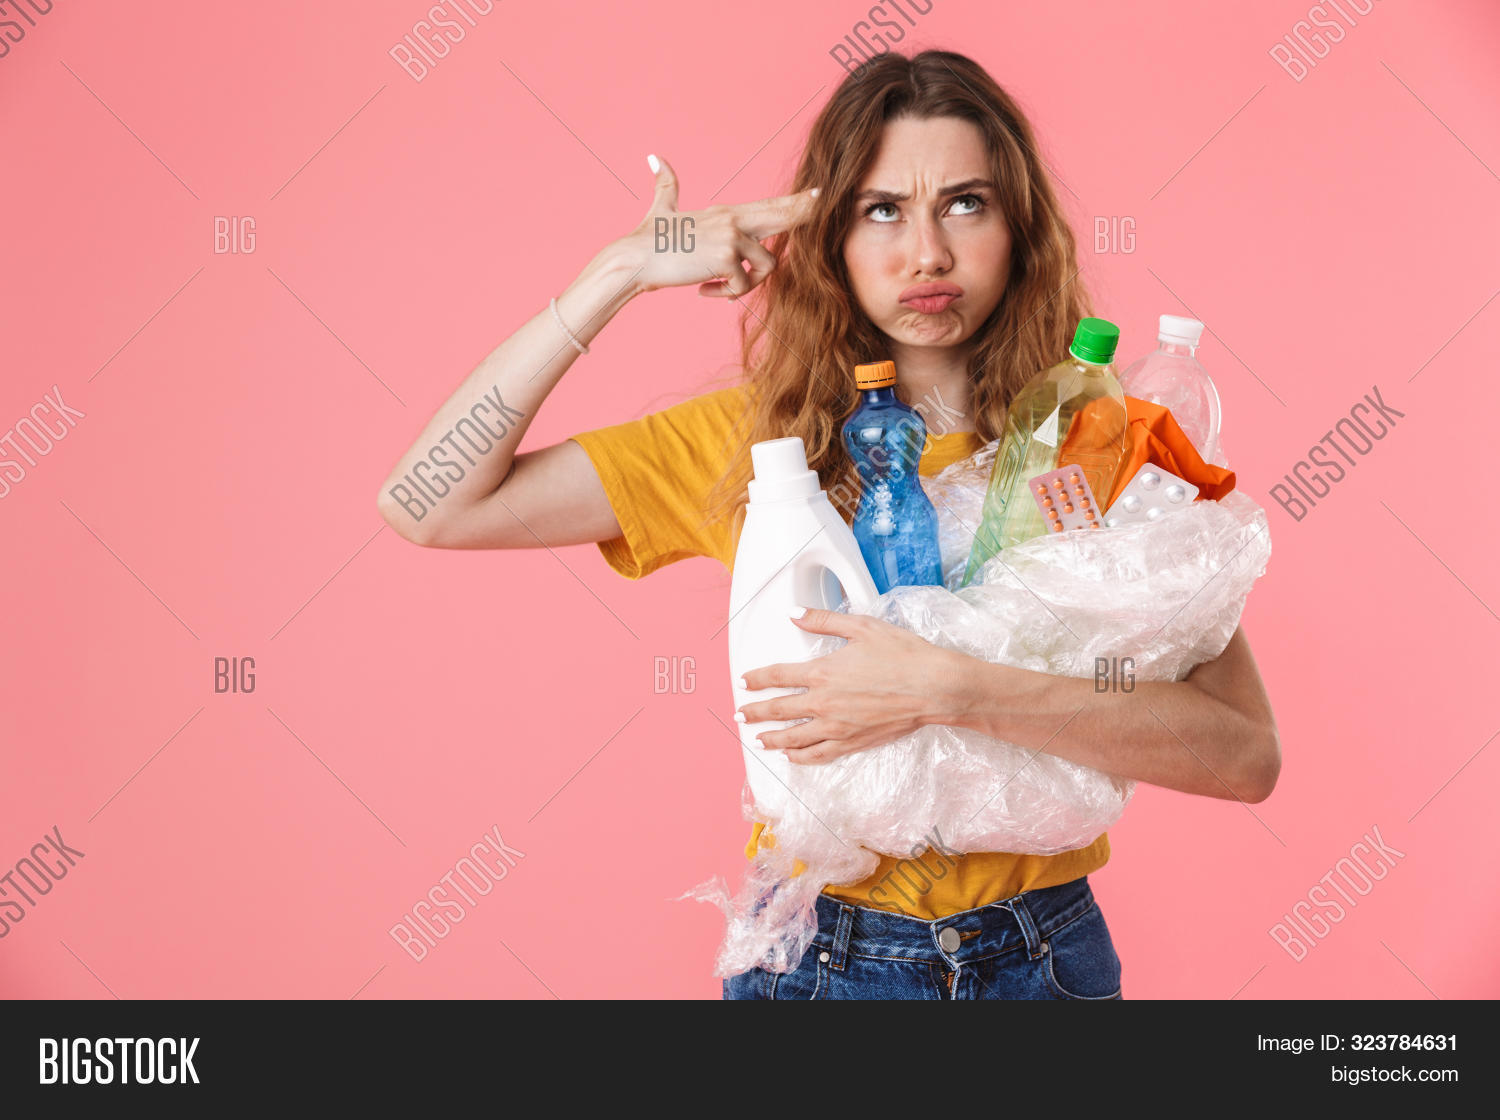 Photo of displeased caucasian woman in basic t-shirt holding plastic waste and showing gun gesture isolated over pink background